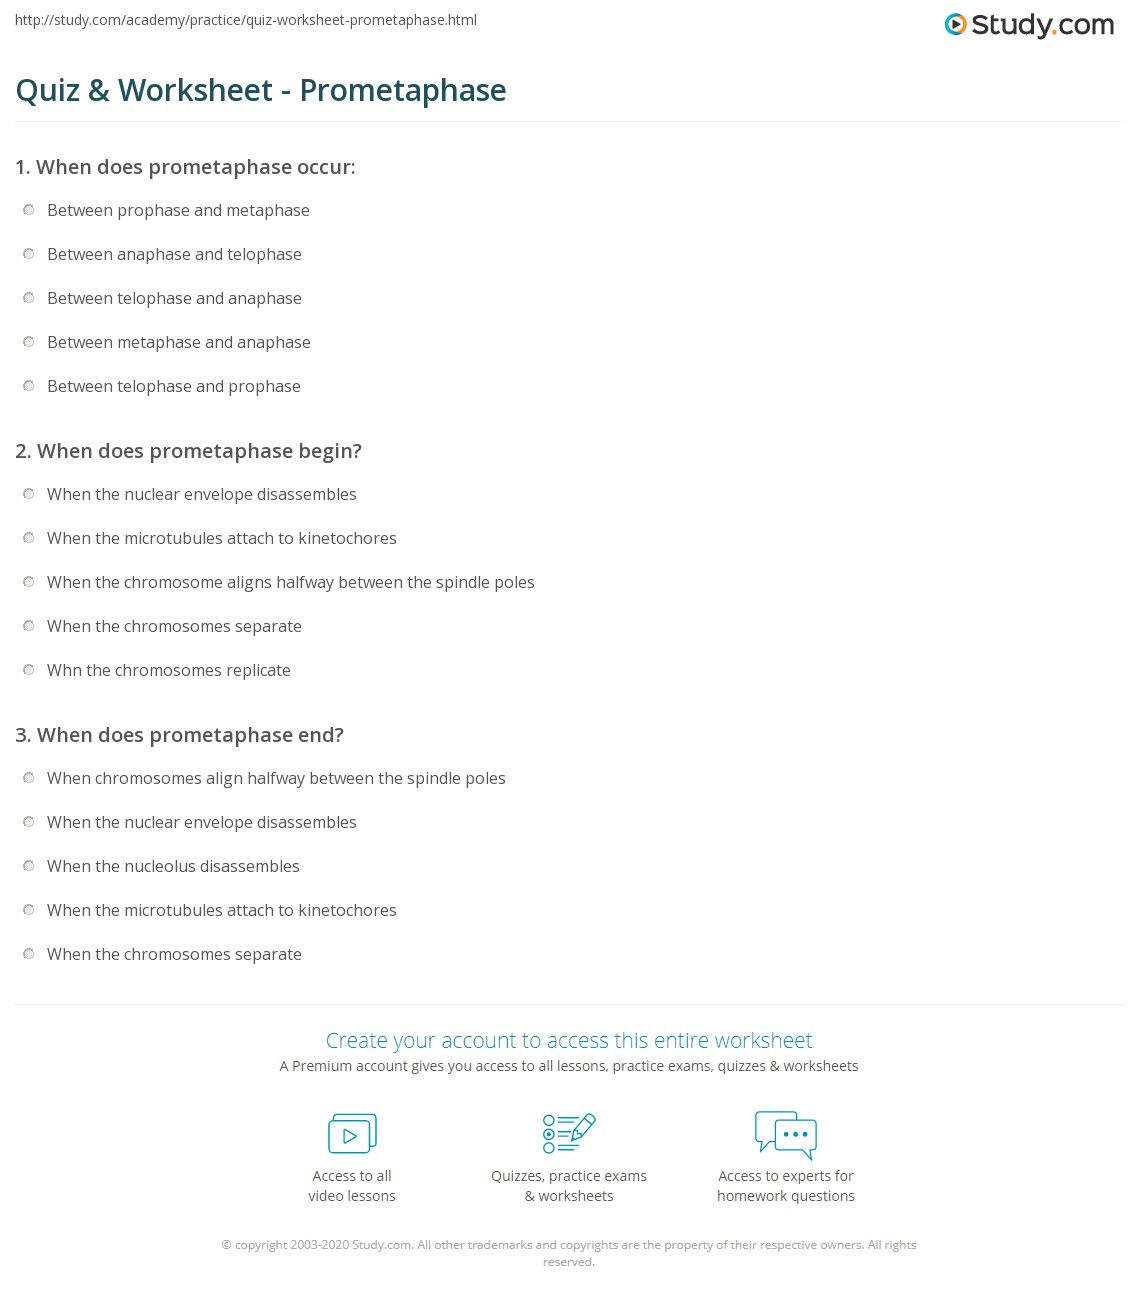 quiz worksheet prometaphase study com